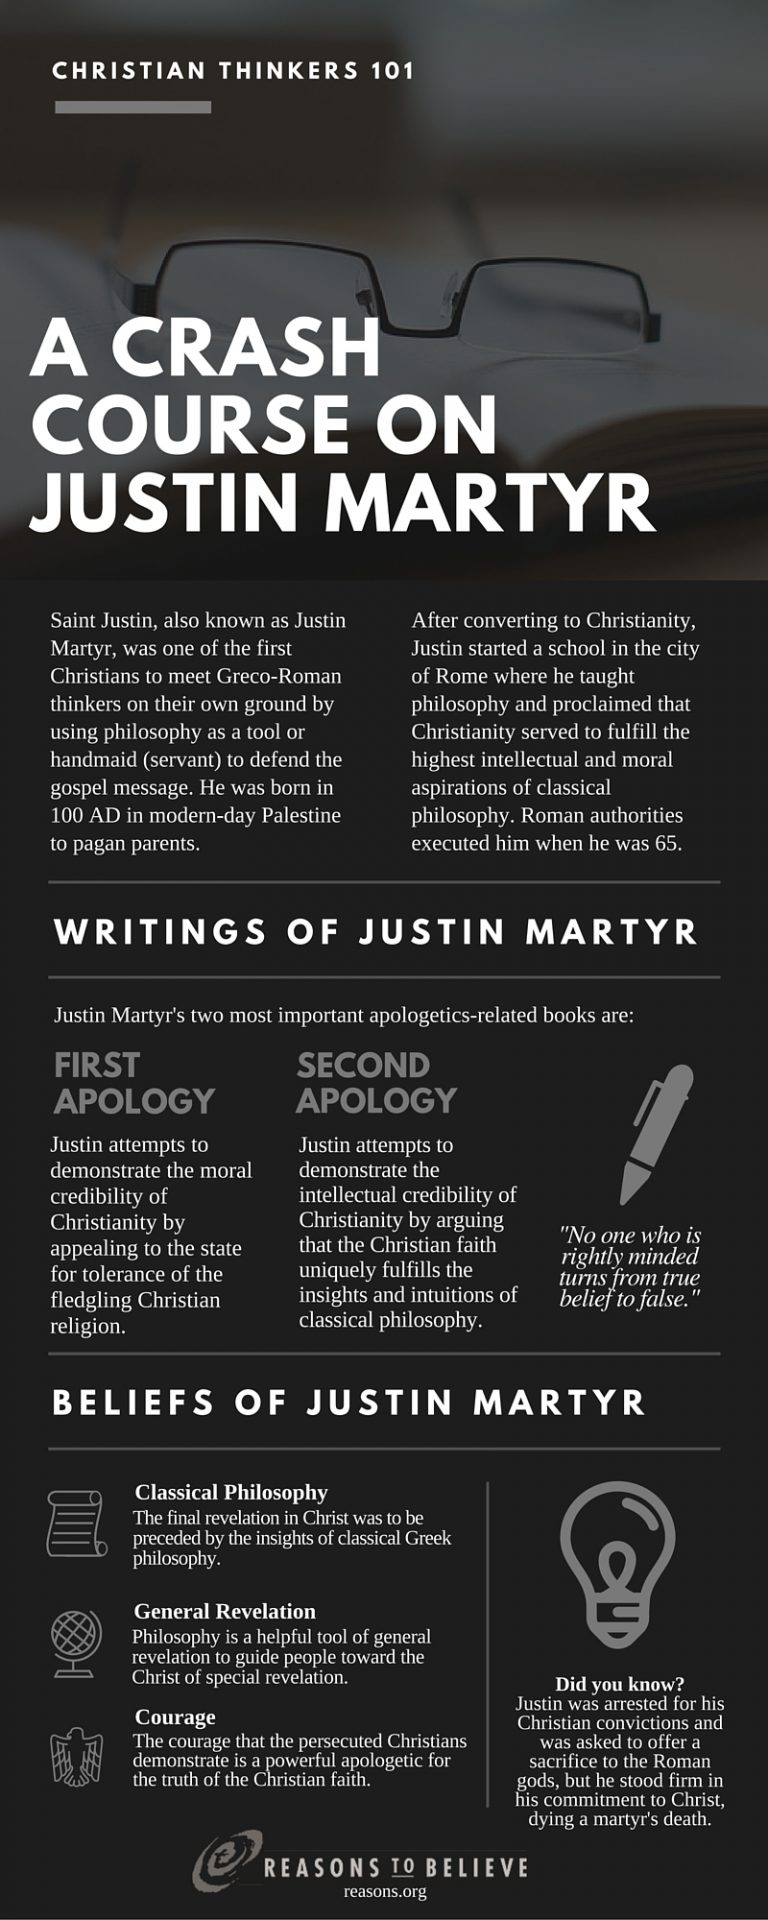 CRASH-COURSE-JUSTIN-MARTYR-768x1920